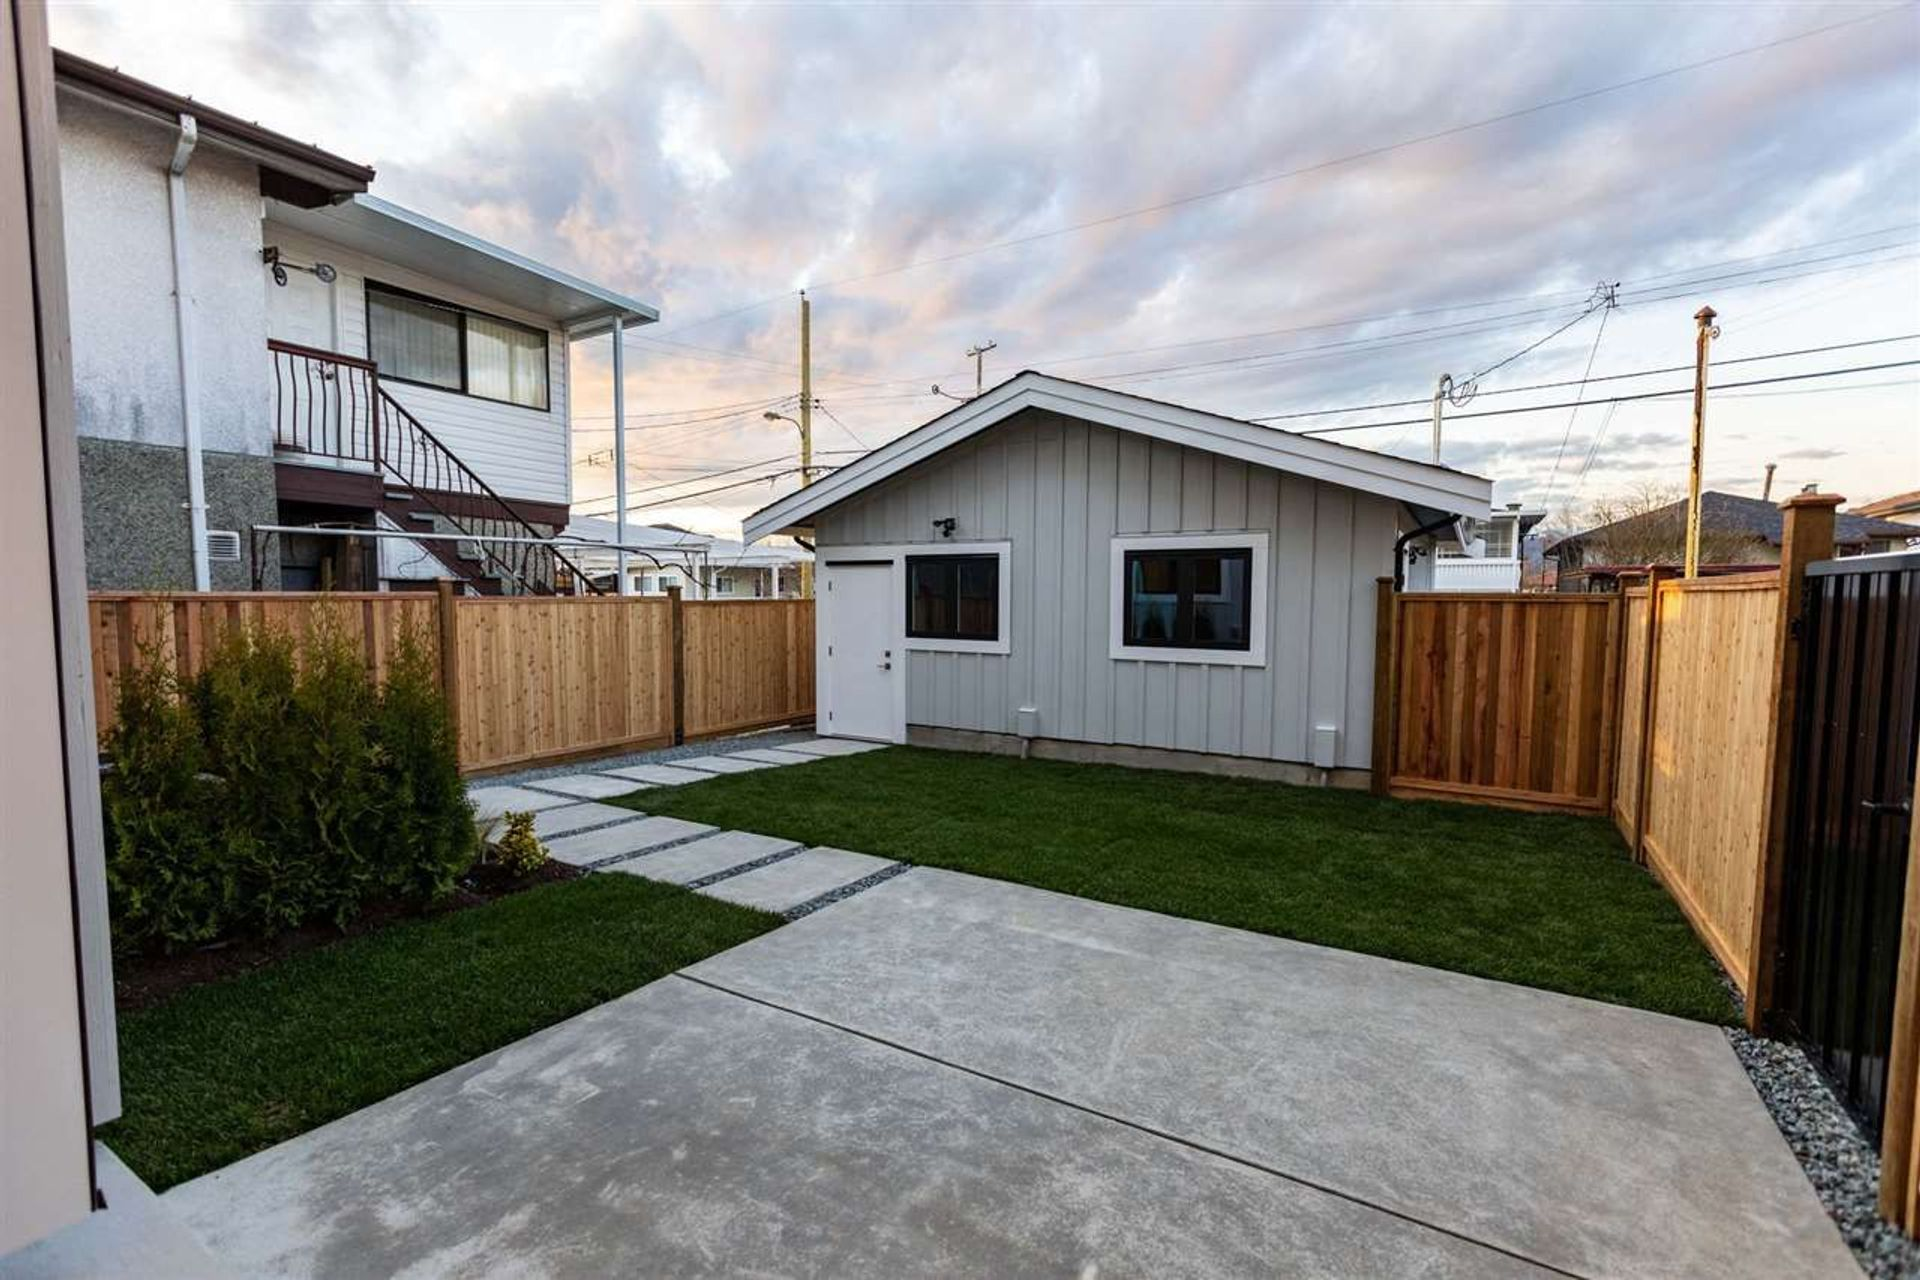 3439-e-24th-avenue-renfrew-heights-vancouver-east-30 at 3439 E 24th Avenue, Renfrew Heights, Vancouver East